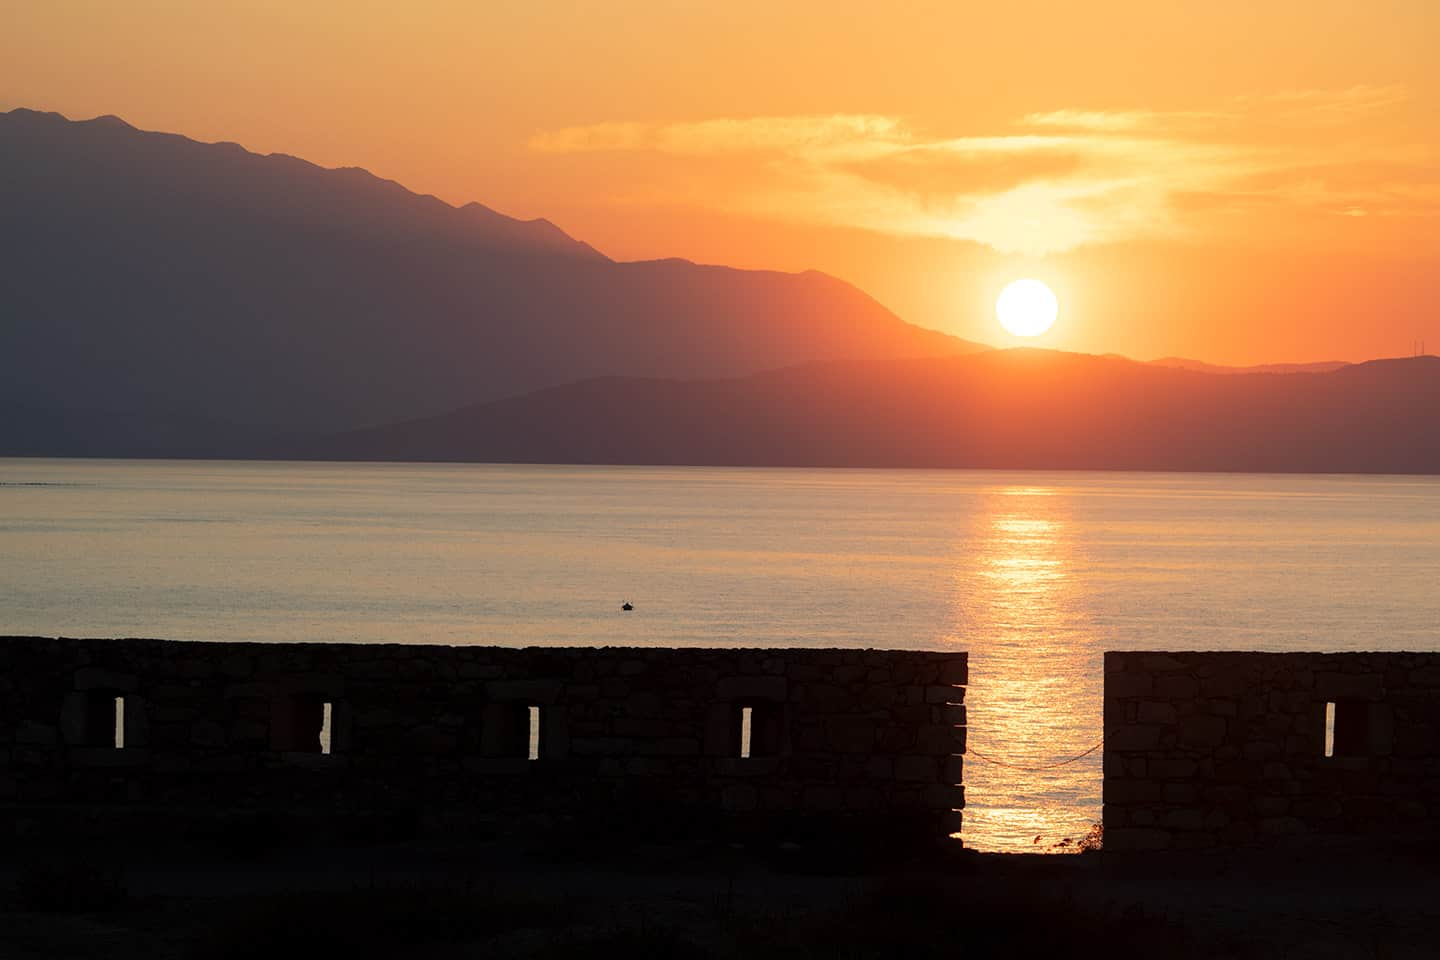 Image of a sunset from the FORTEZZA IN RETHYMNO GREECE